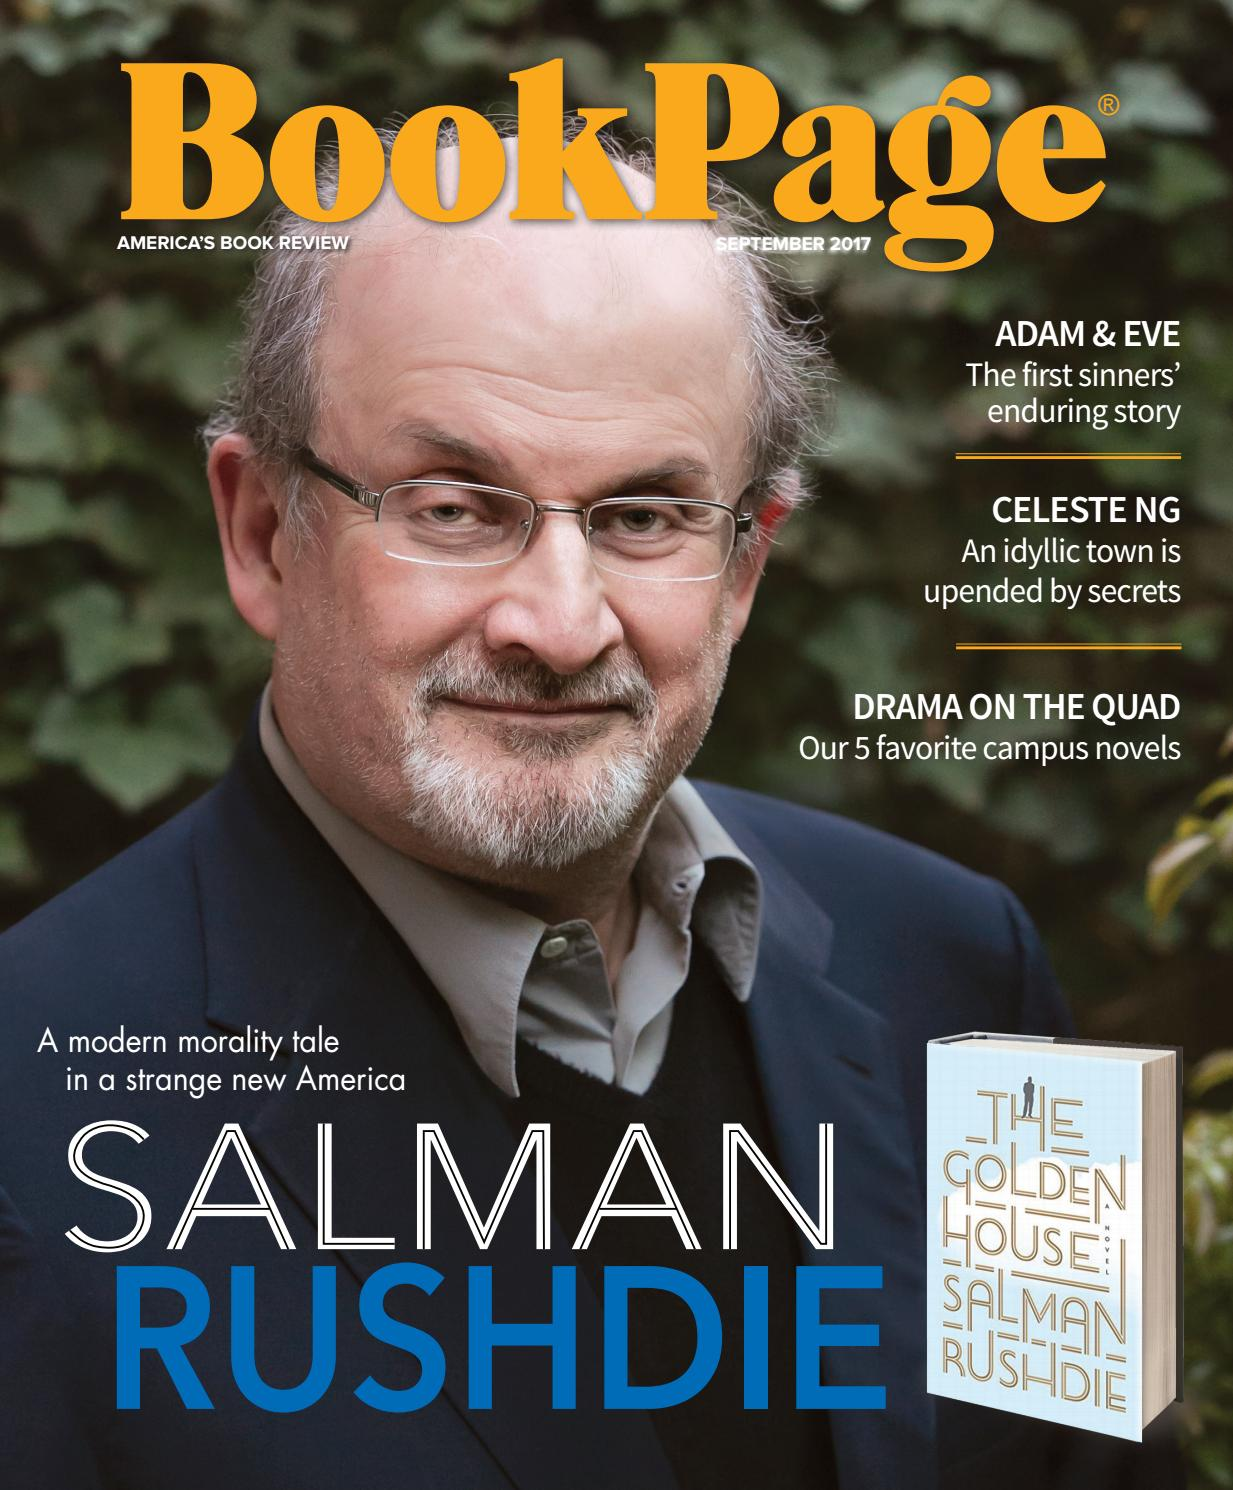 BookPage September 2017 by BookPage - issuu